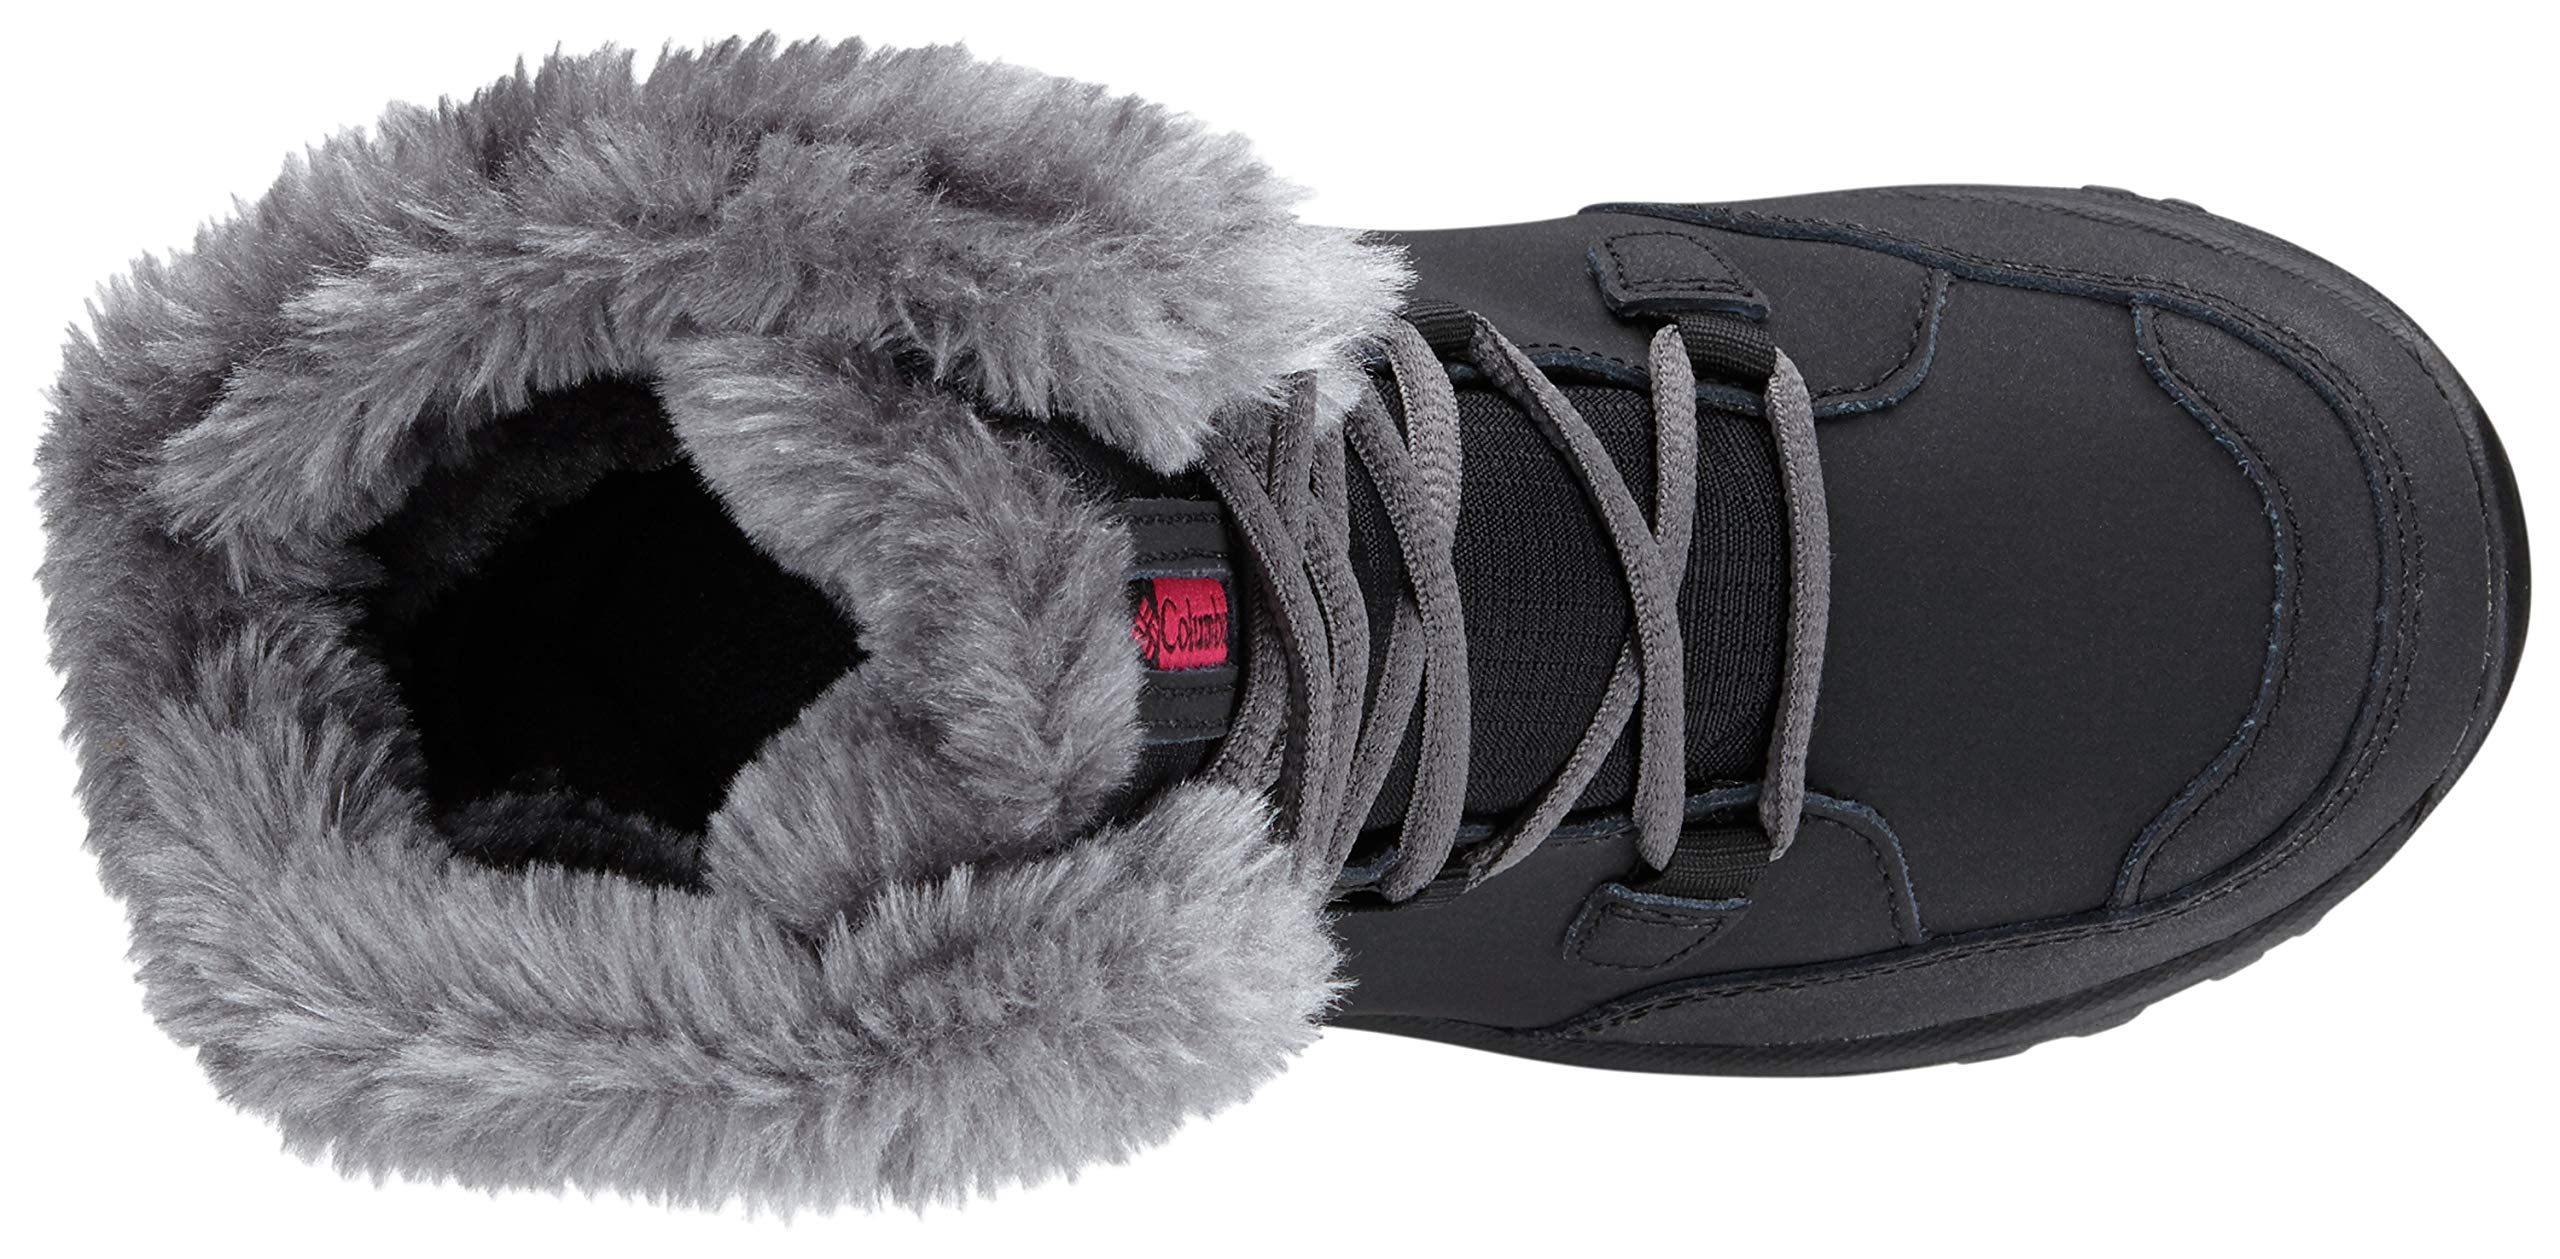 Columbia Youth Ice Maiden Lace Winter Boot (Little Kid/Big Kid), Black, 1 M US Little Kid by Columbia (Image #7)